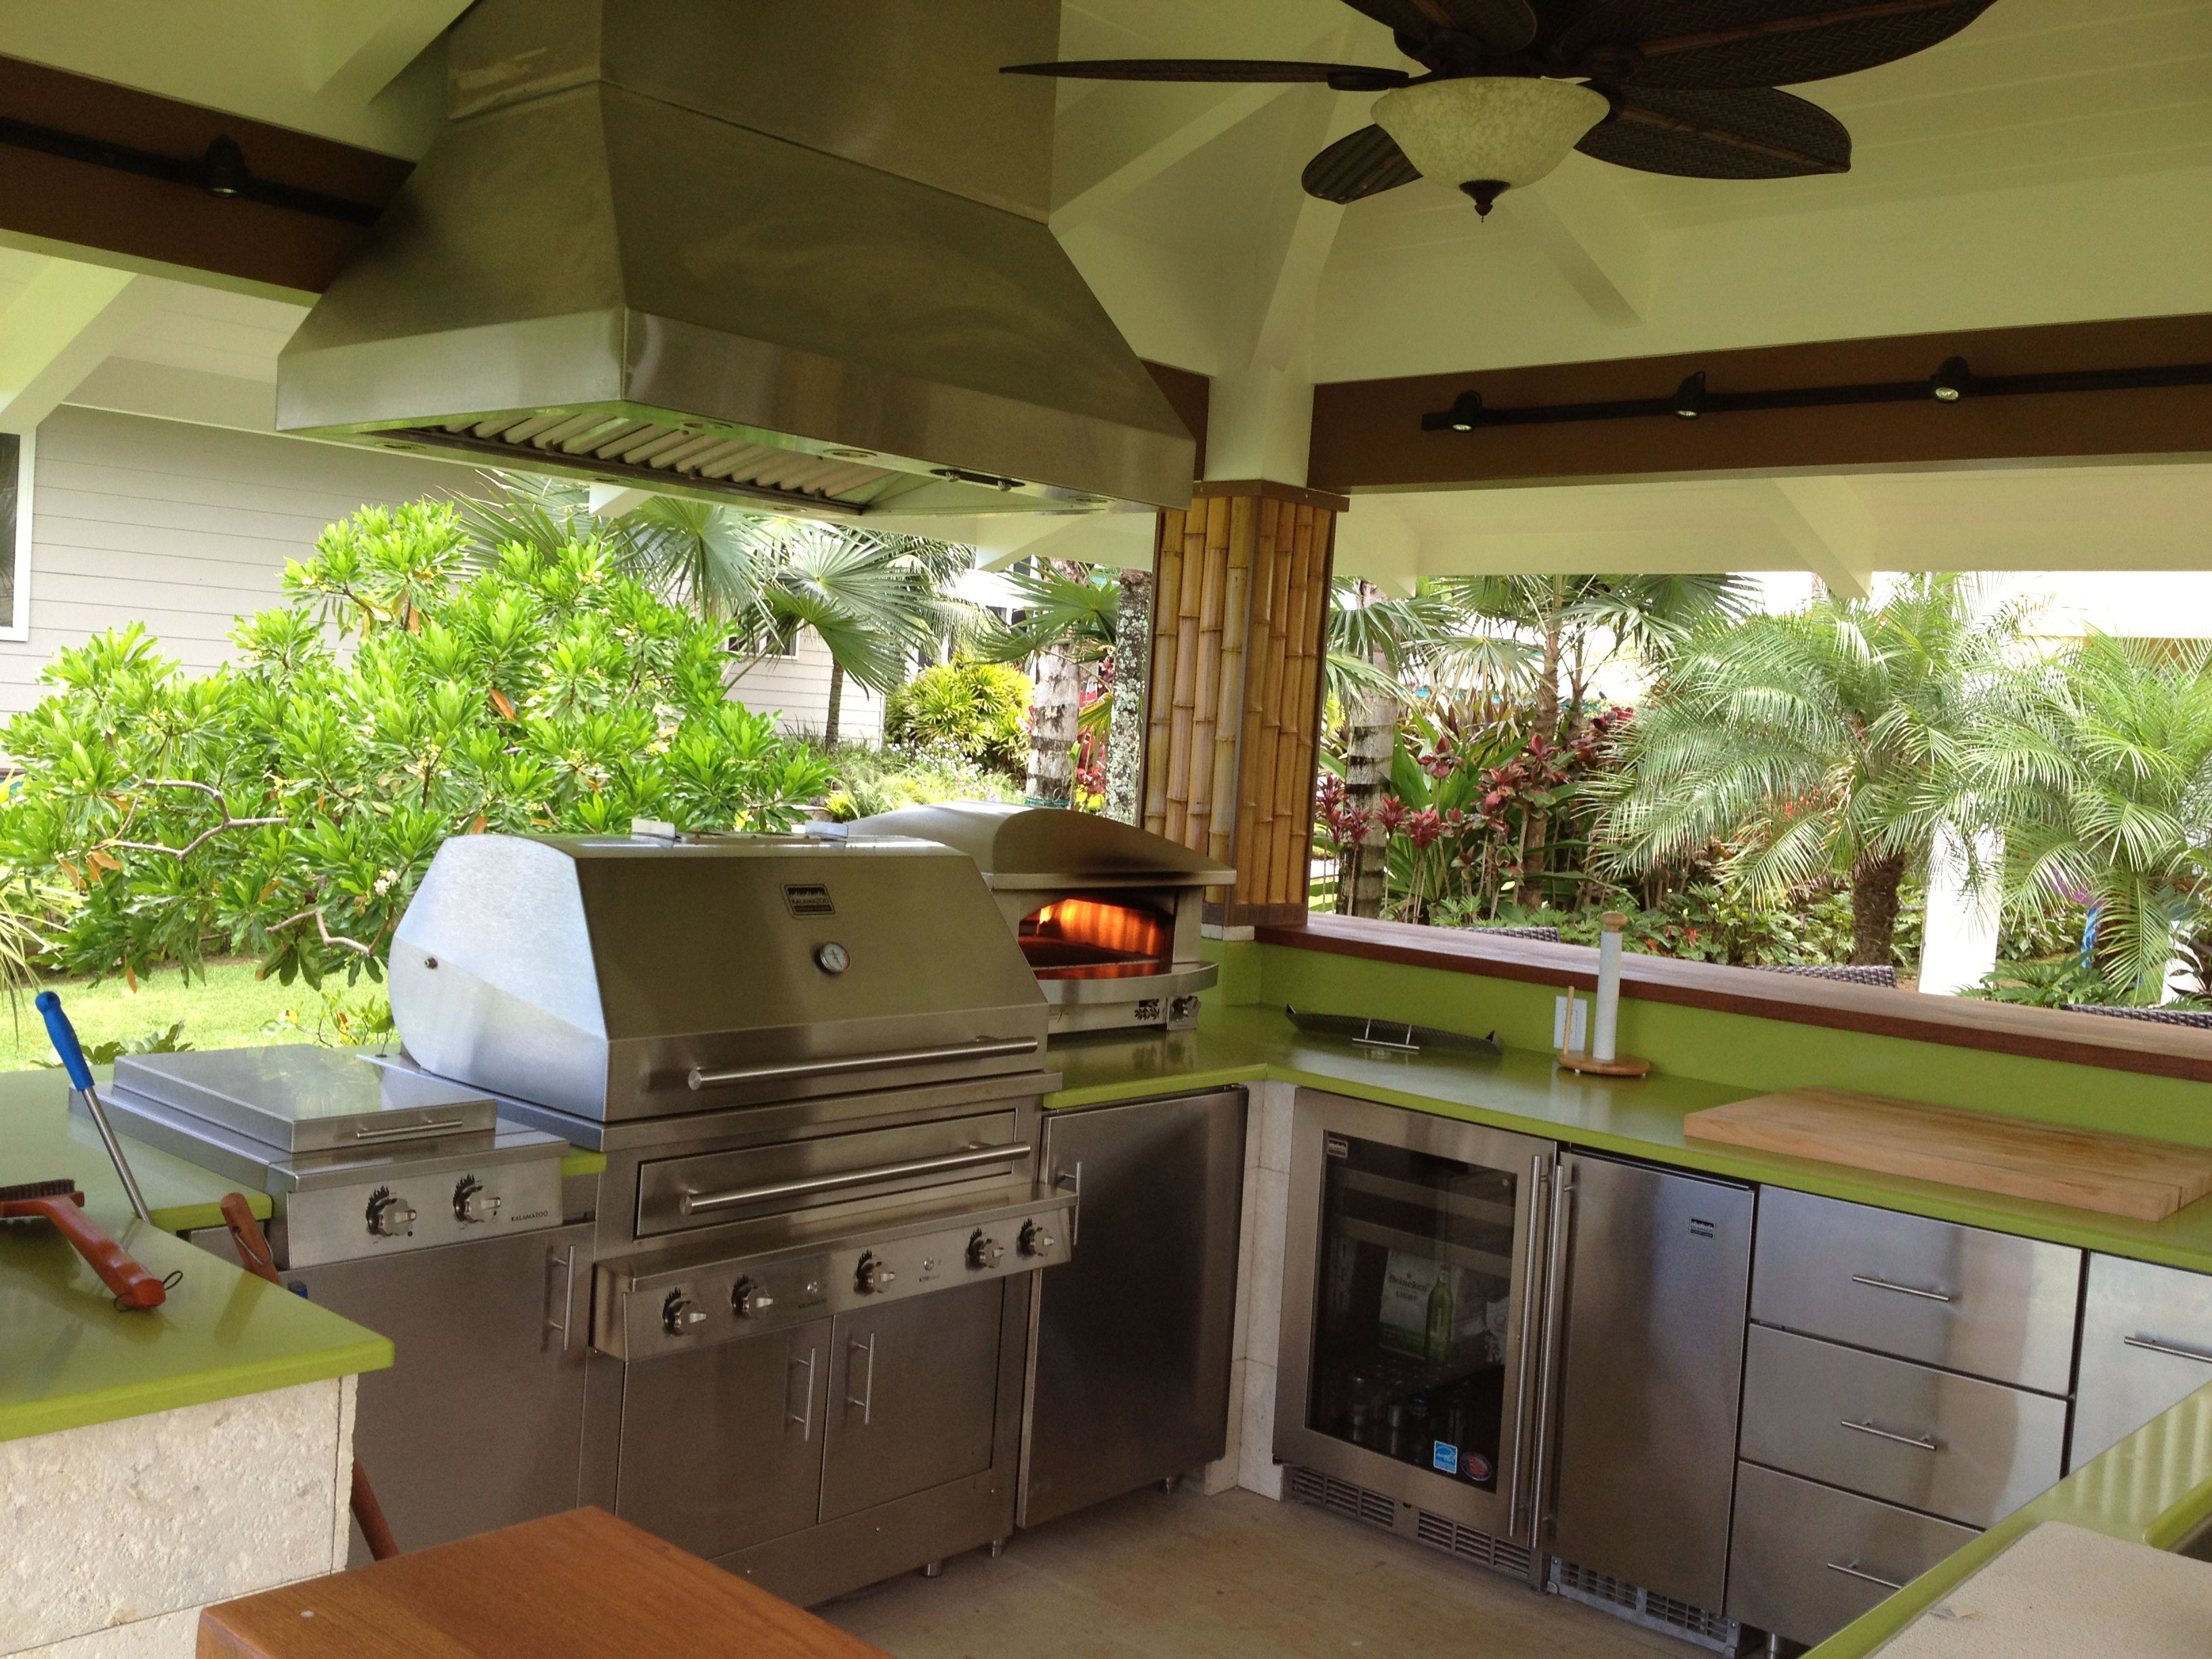 Kalamazoo Outdoor Gourmet Kitchen In Hawaii Outdoor Kitchen